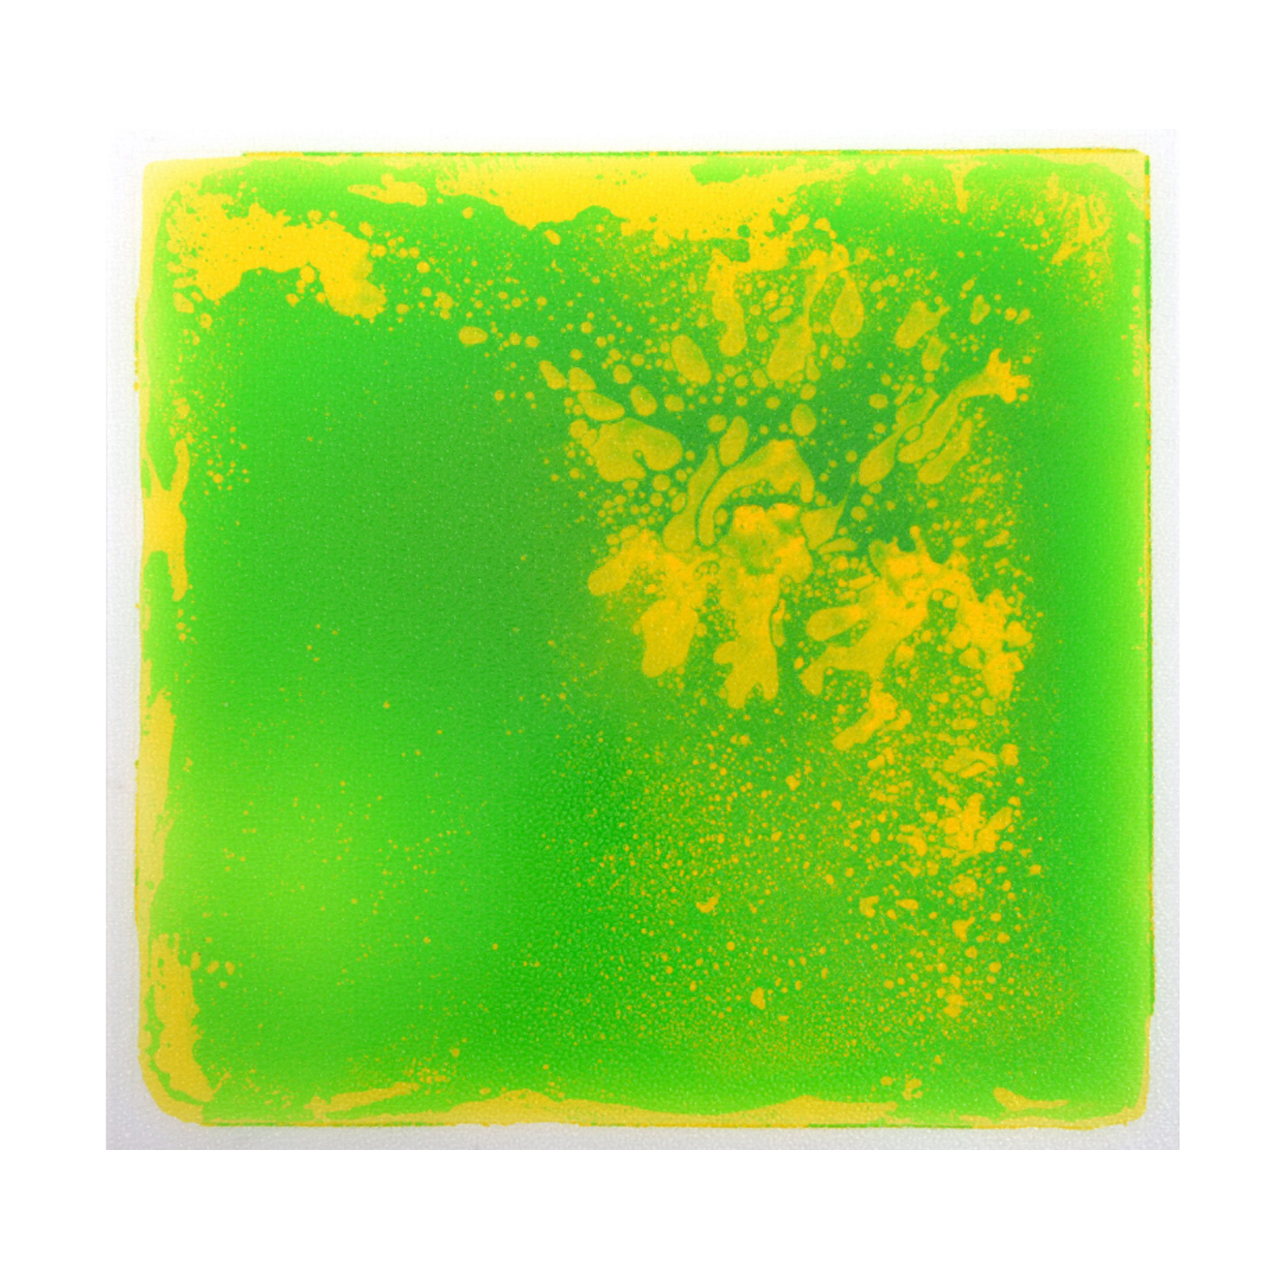 These colourful oil tiles are a fantastic addition to nursery setting, playrooms and classrooms.